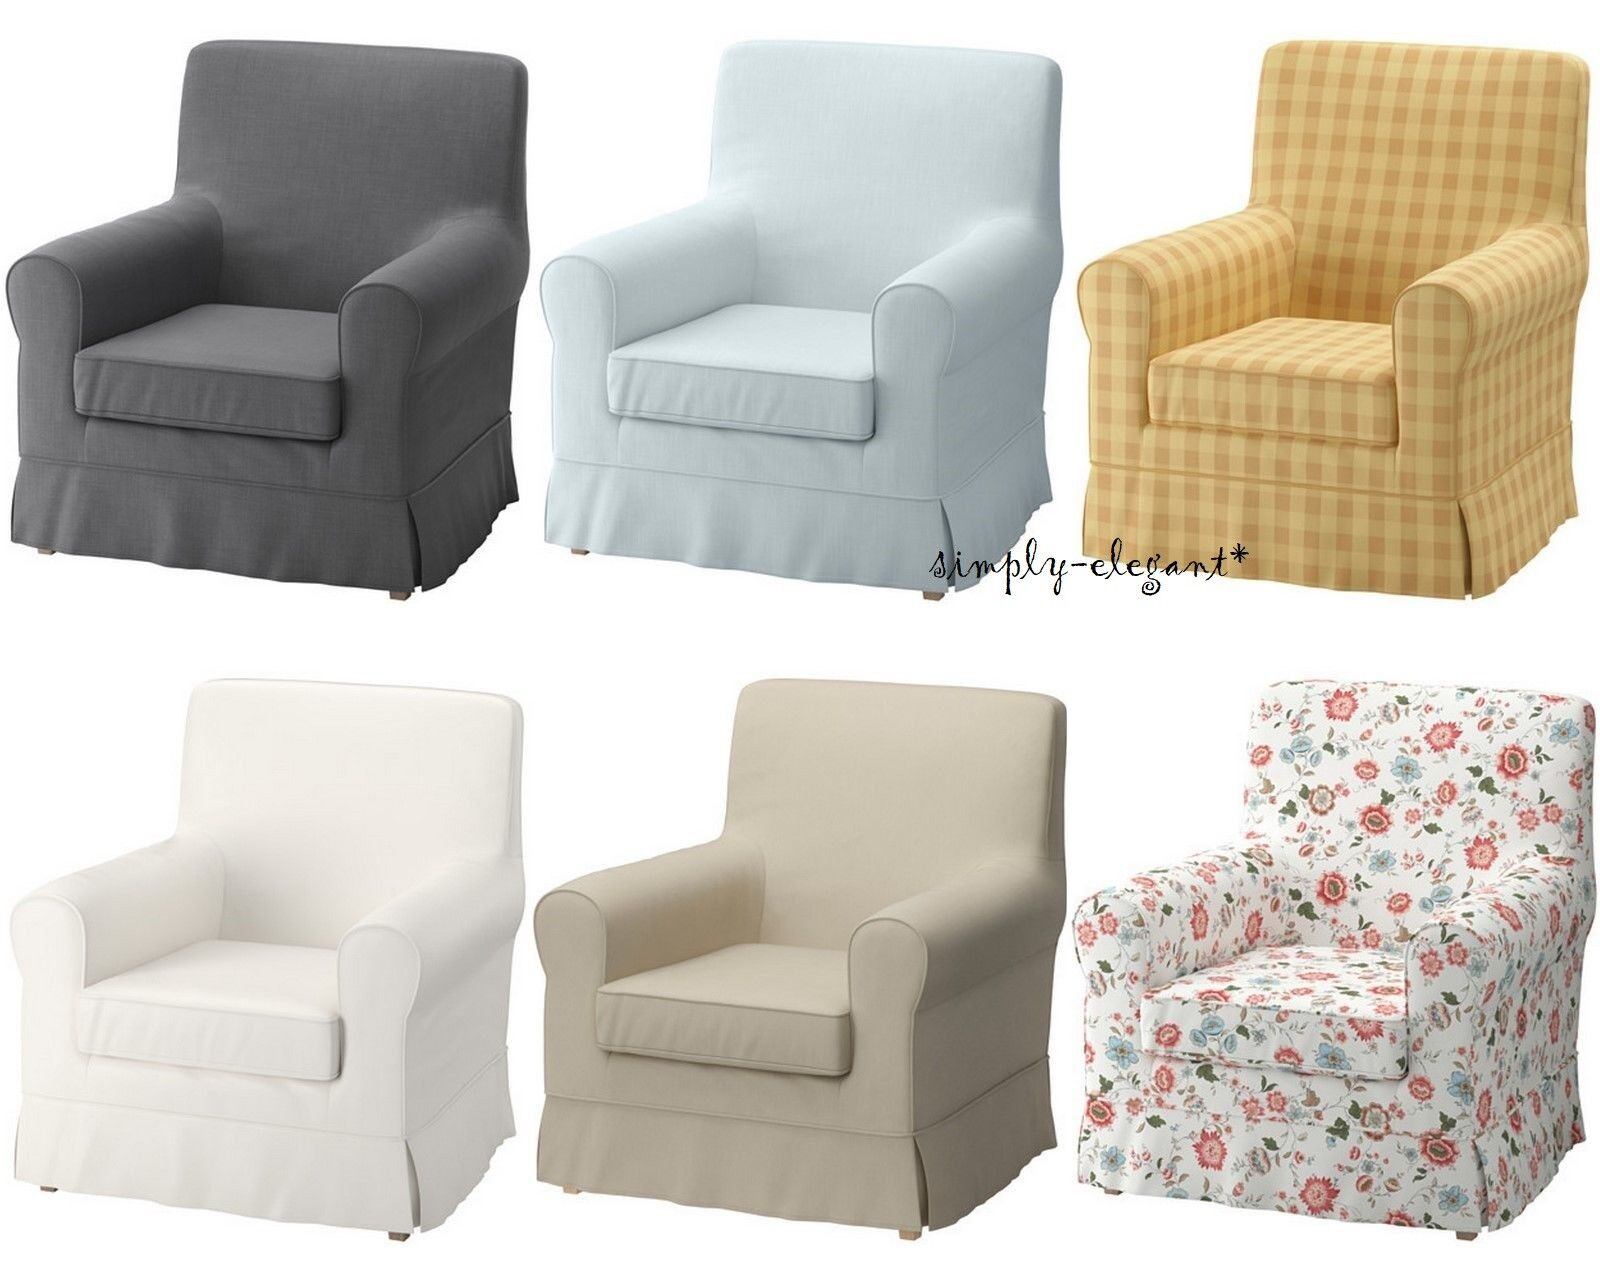 chair covers for ikea chairs